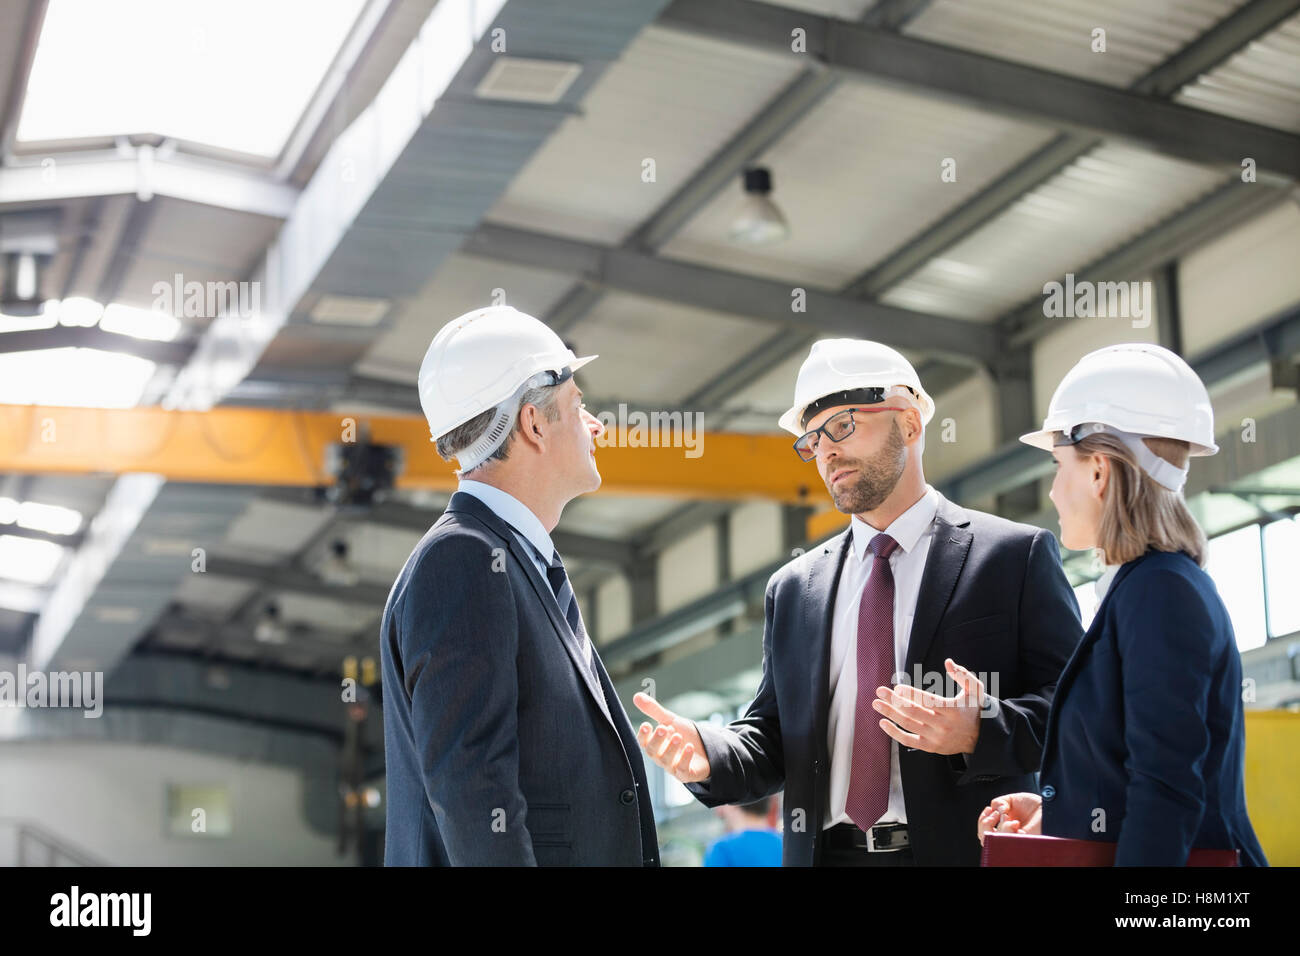 Business people wearing hardhats having discussion in metal industry - Stock Image